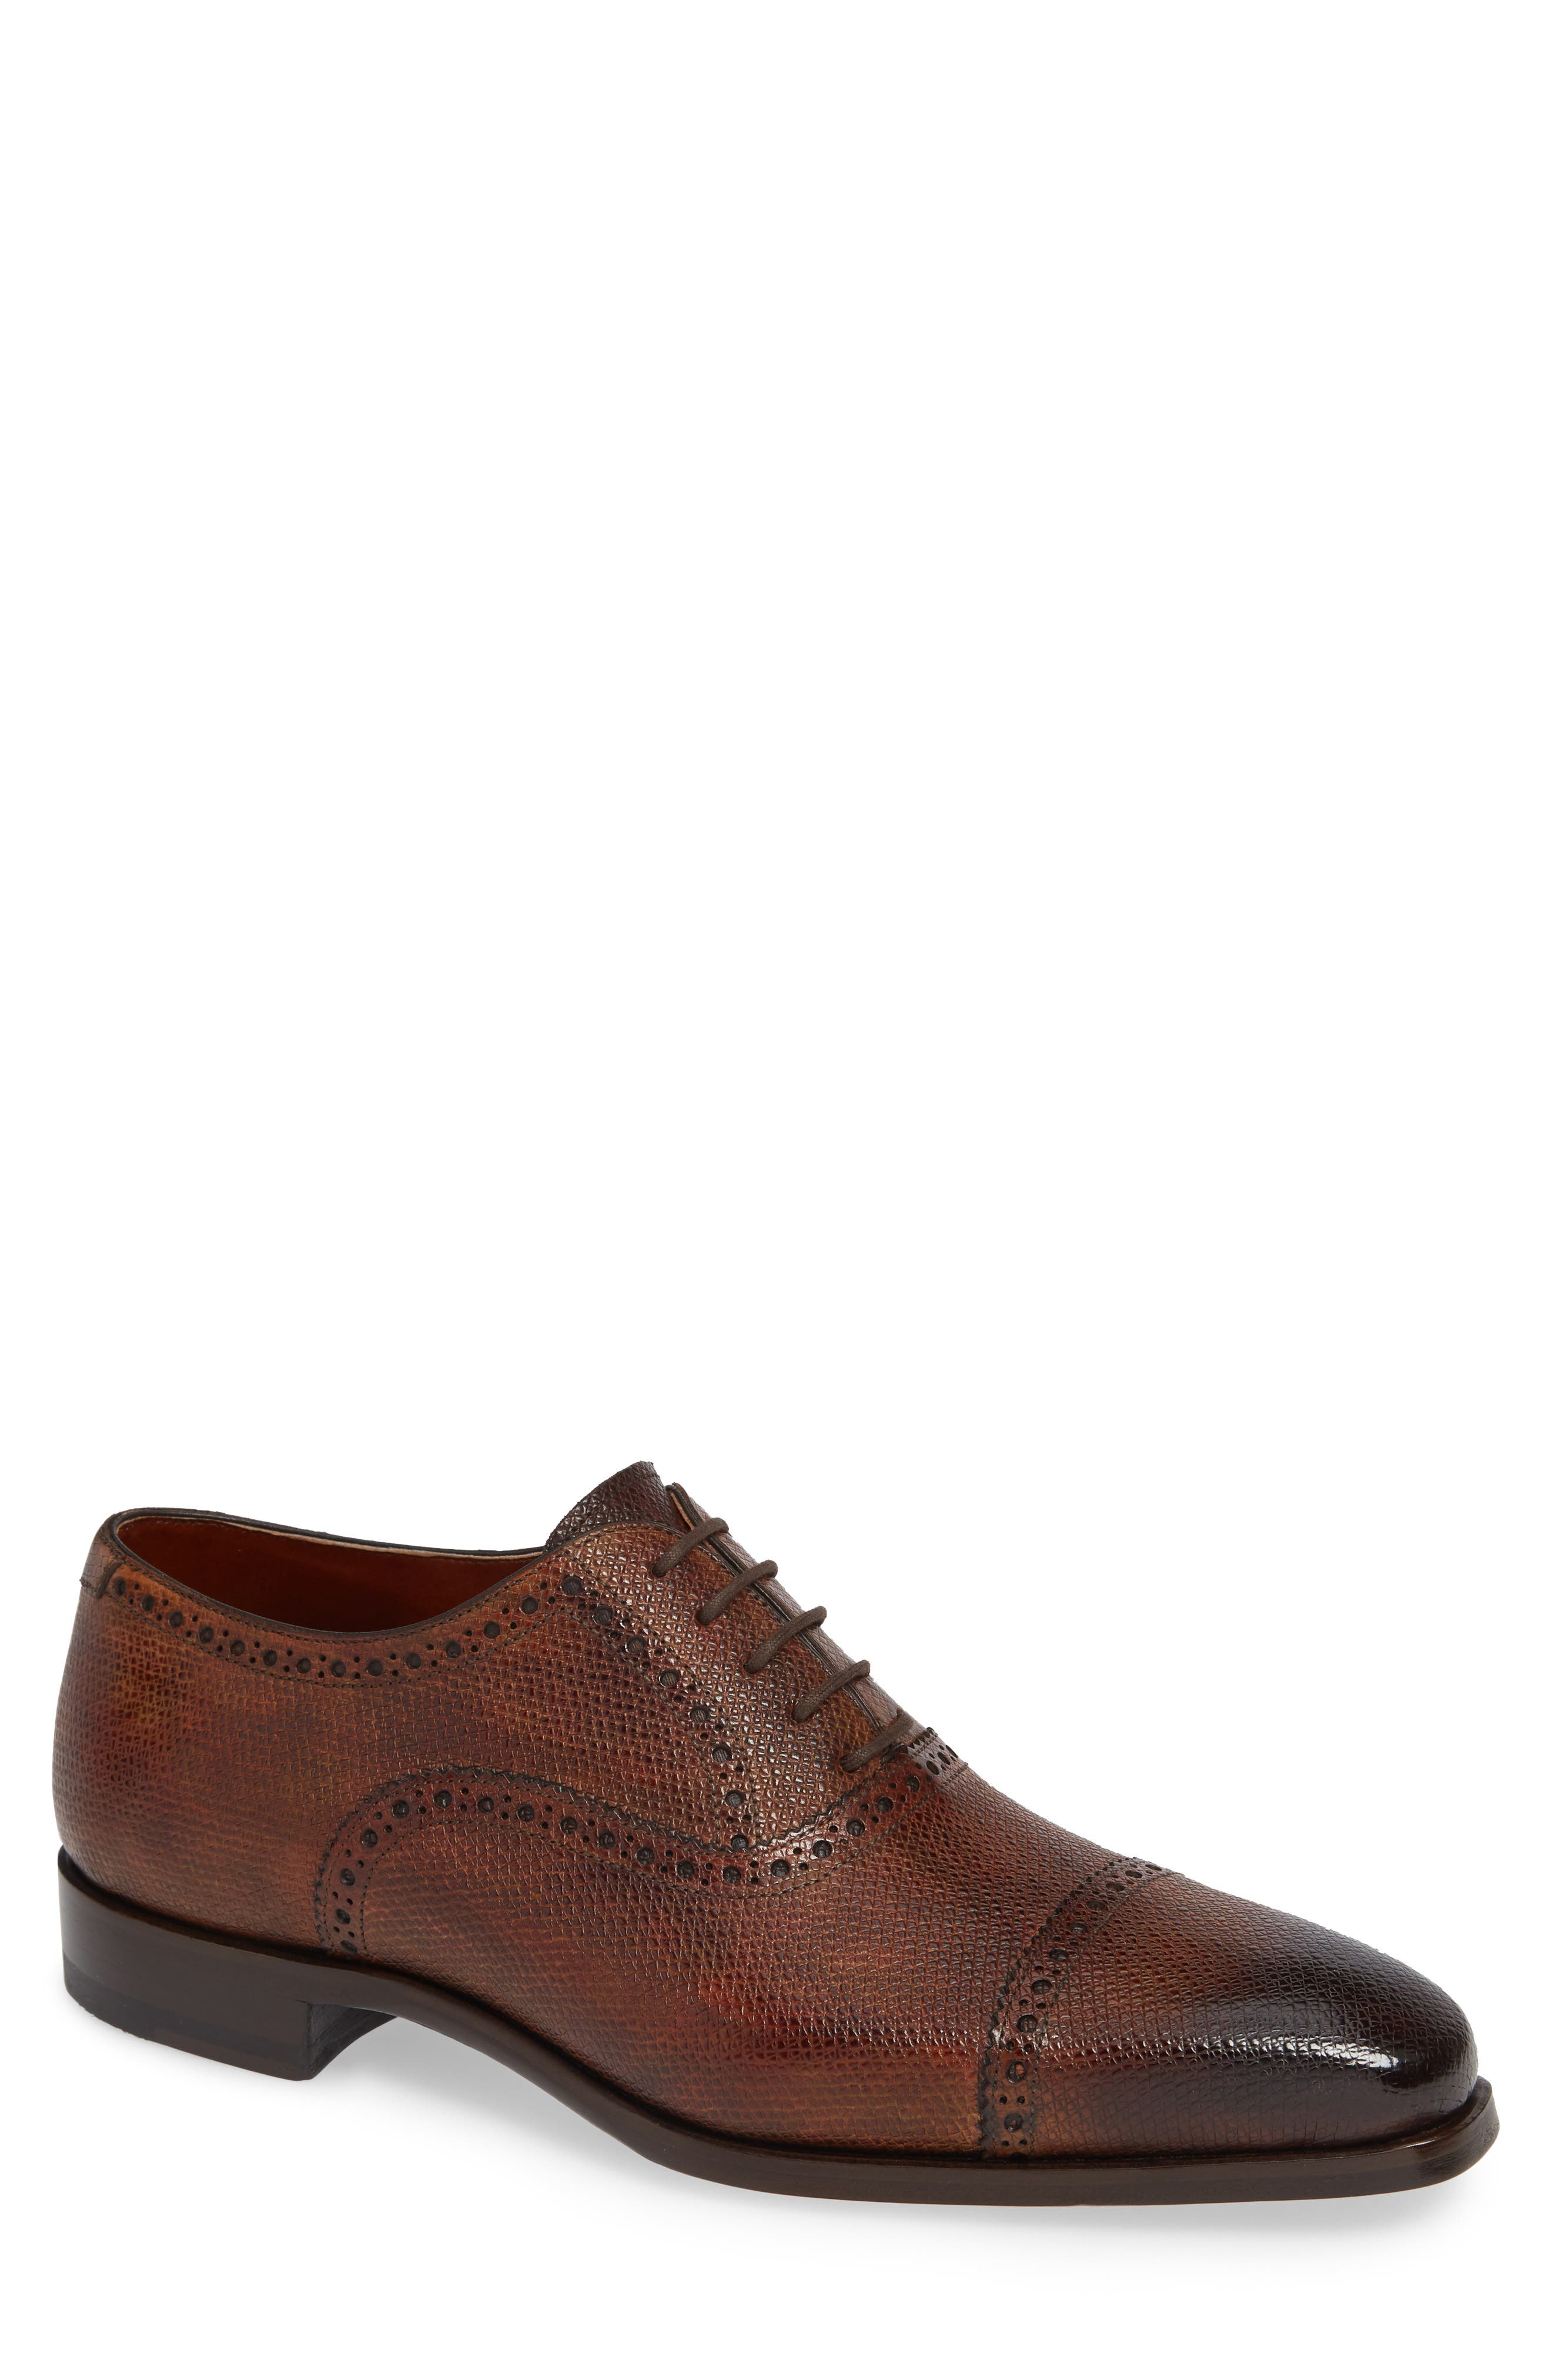 Charlton Cap Toe Oxford,                         Main,                         color, MID BROWN LEATHER